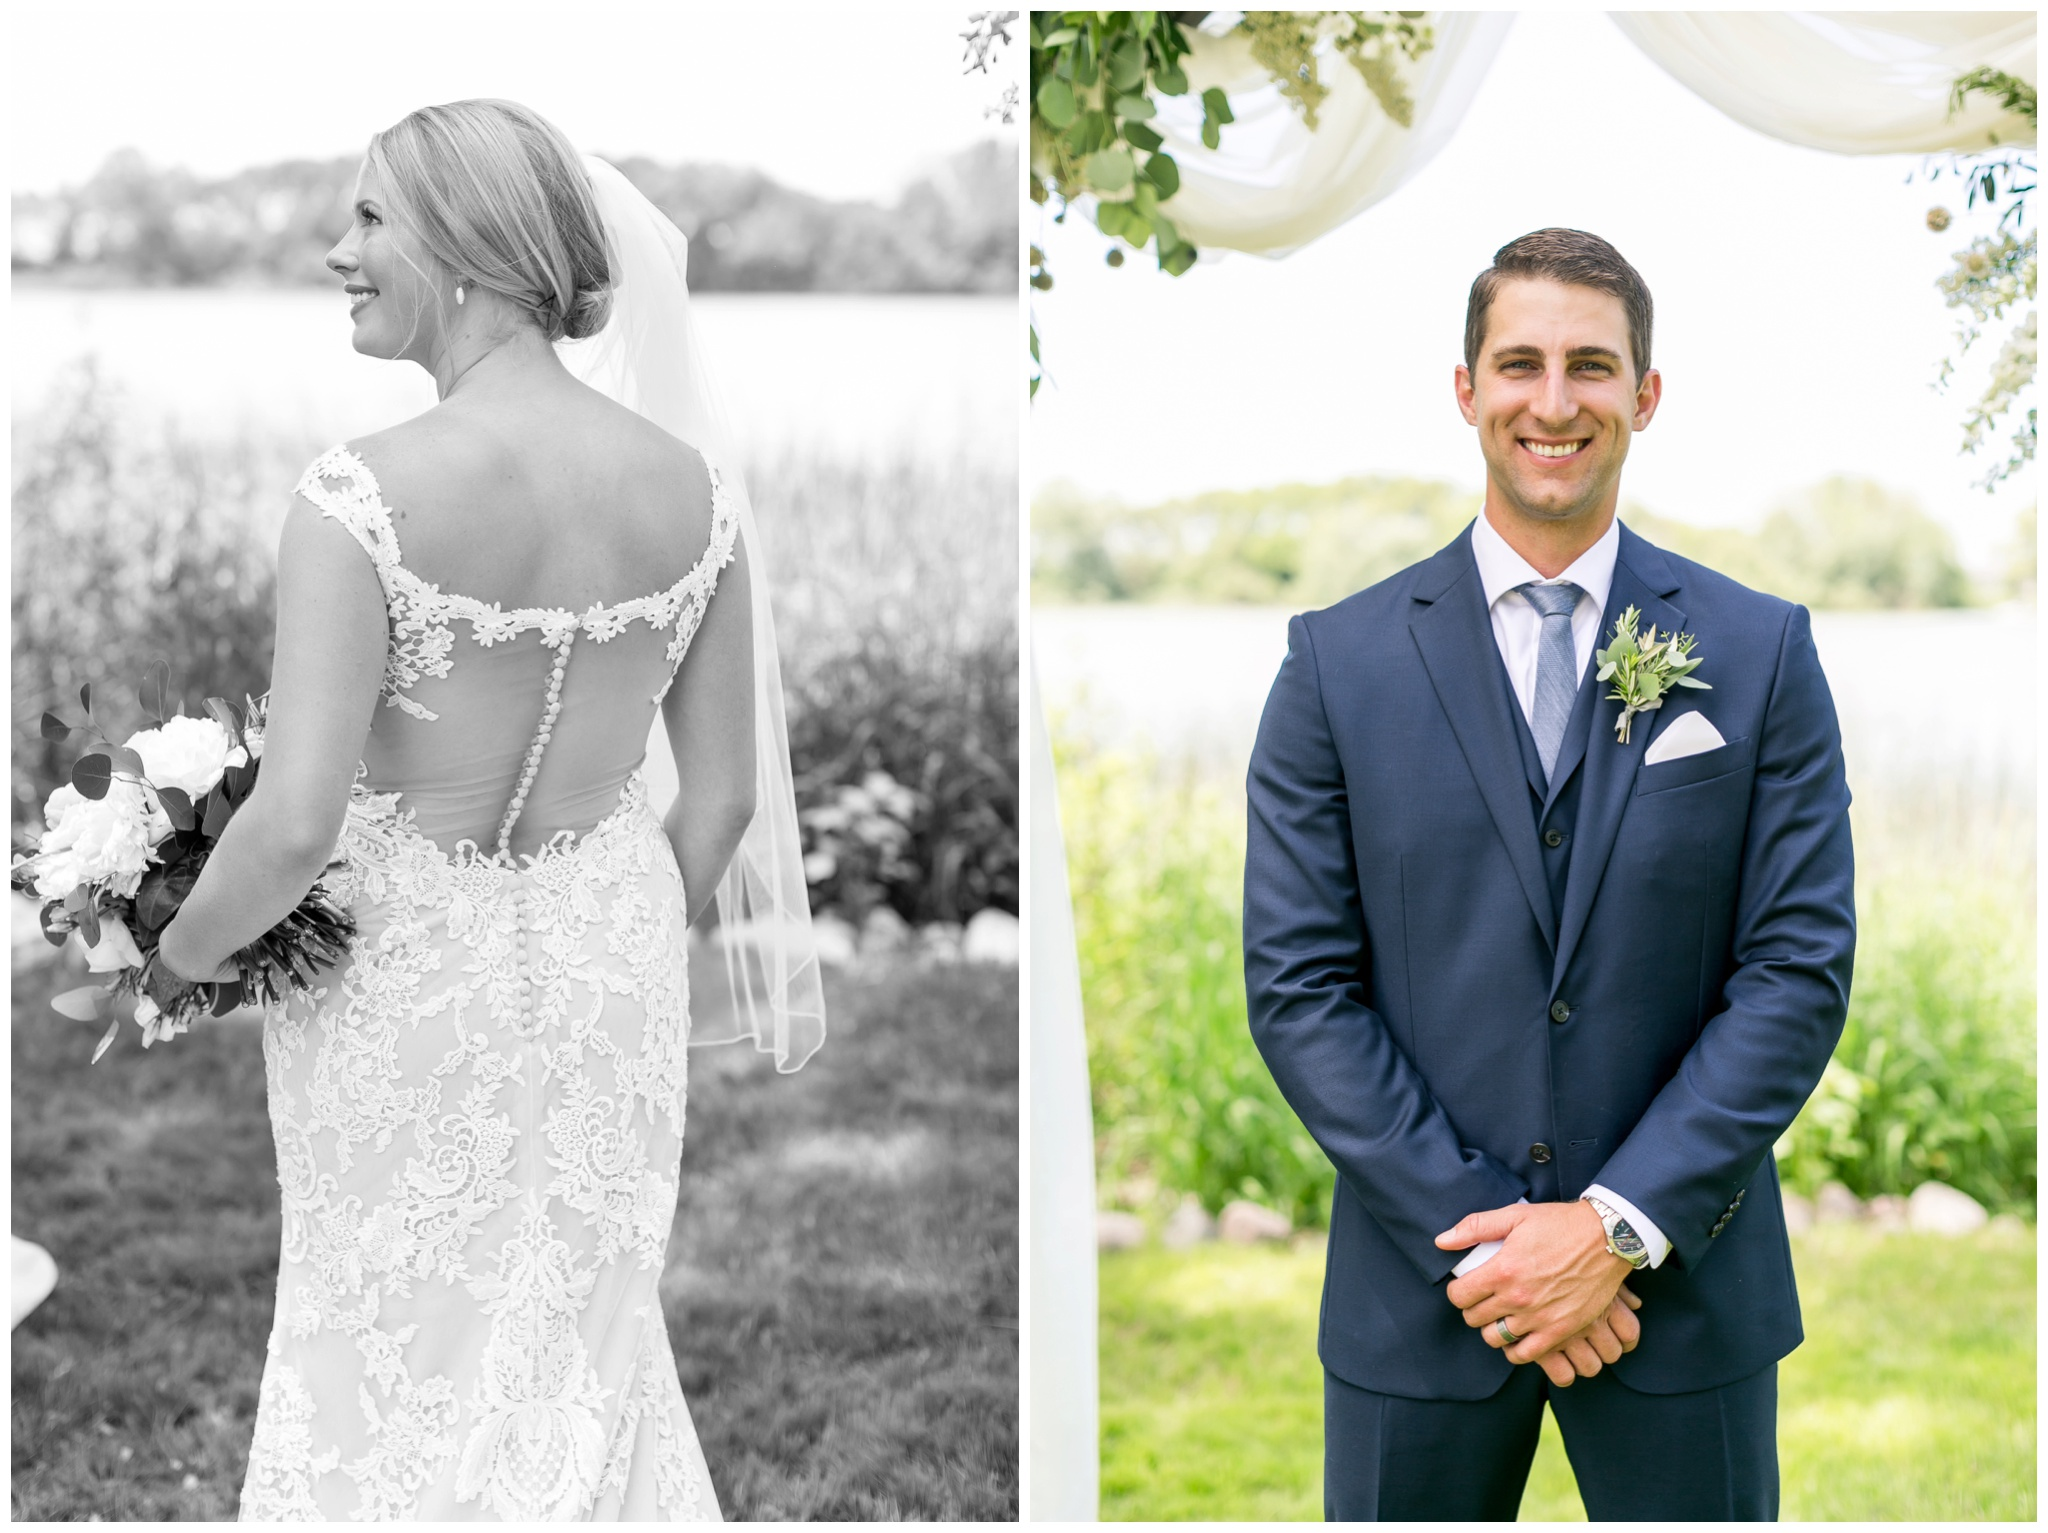 private_estate_wedding_stoughton_wisconsin_wedding_caynay_photo_3848.jpg